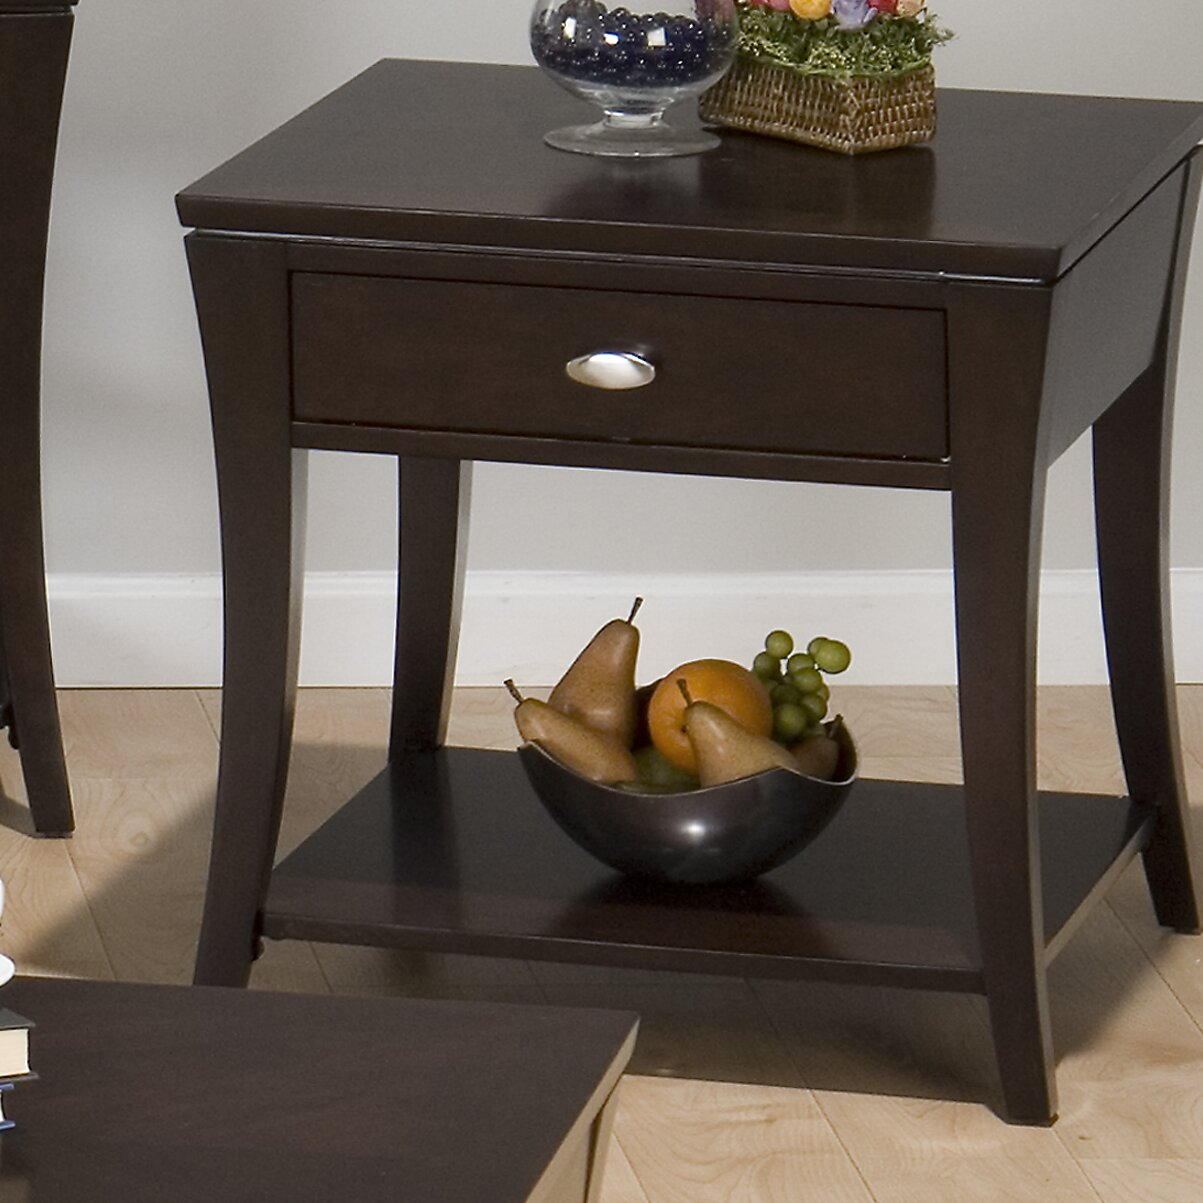 Jofran double header mobile coffee table set reviews for Movable coffee table